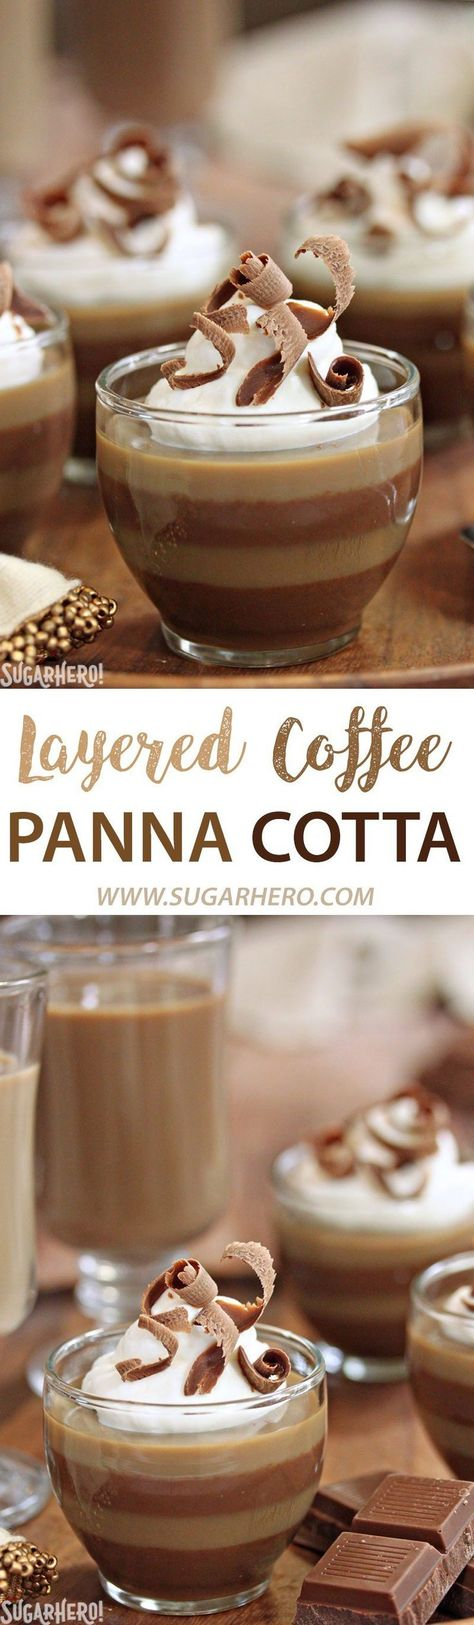 Layered Coffee Panna Cotta - an easy coffee dessert with gorgeous layers of vanilla and mocha flavors! Made with @InDelight iced coffee | From SugarHero.com    #ad